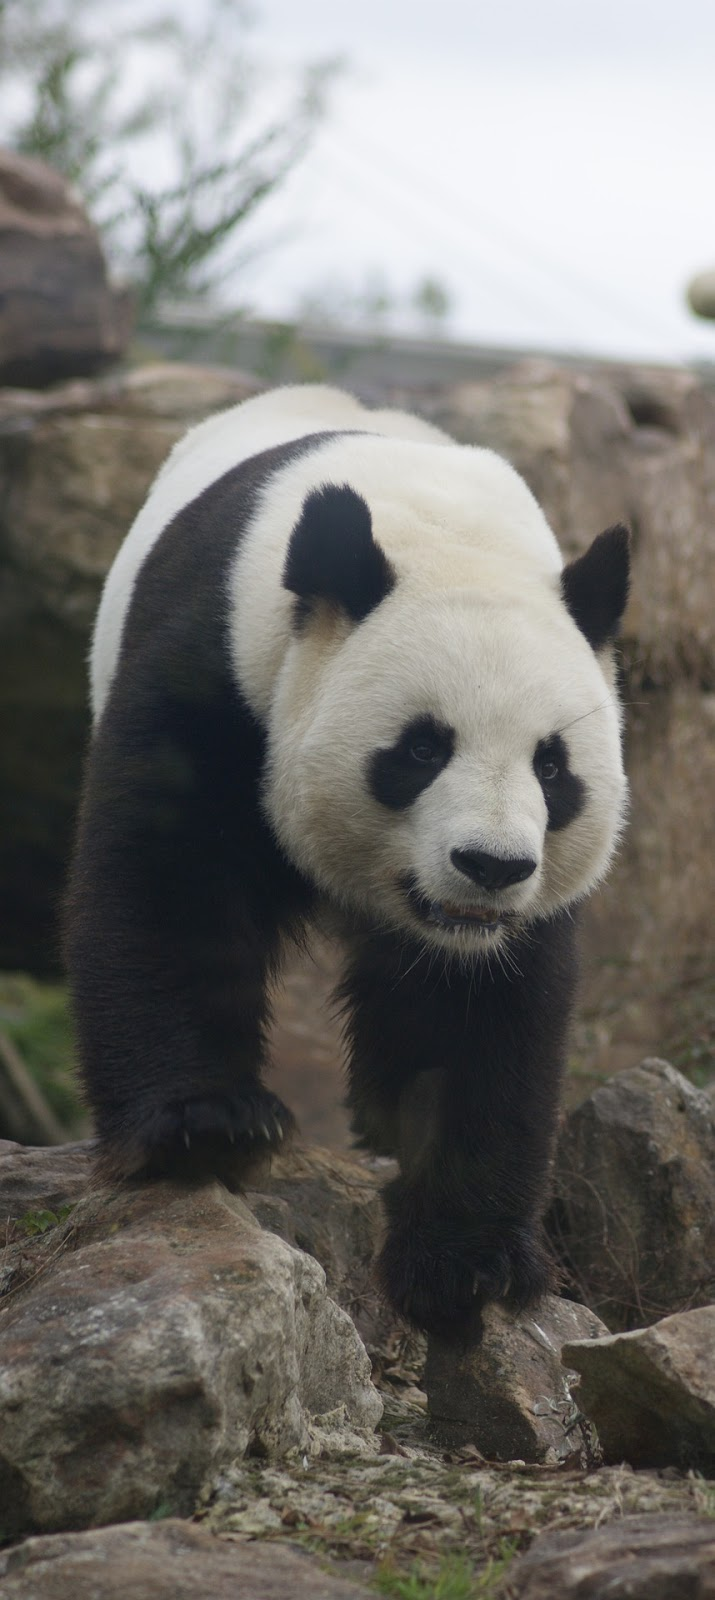 Picture of a panda.